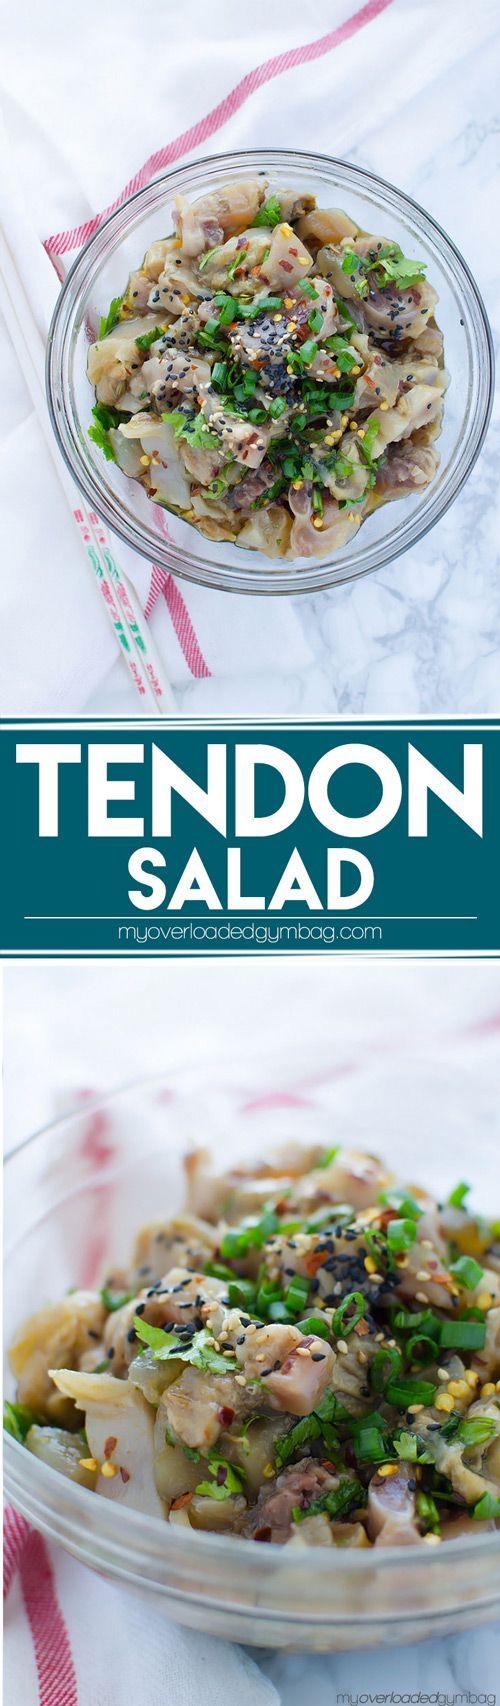 Low FODMAP, gluten free. A nutritious, protein-rich salad, that will help keep you looking youthful. | http://myoverloadedgymbag.com